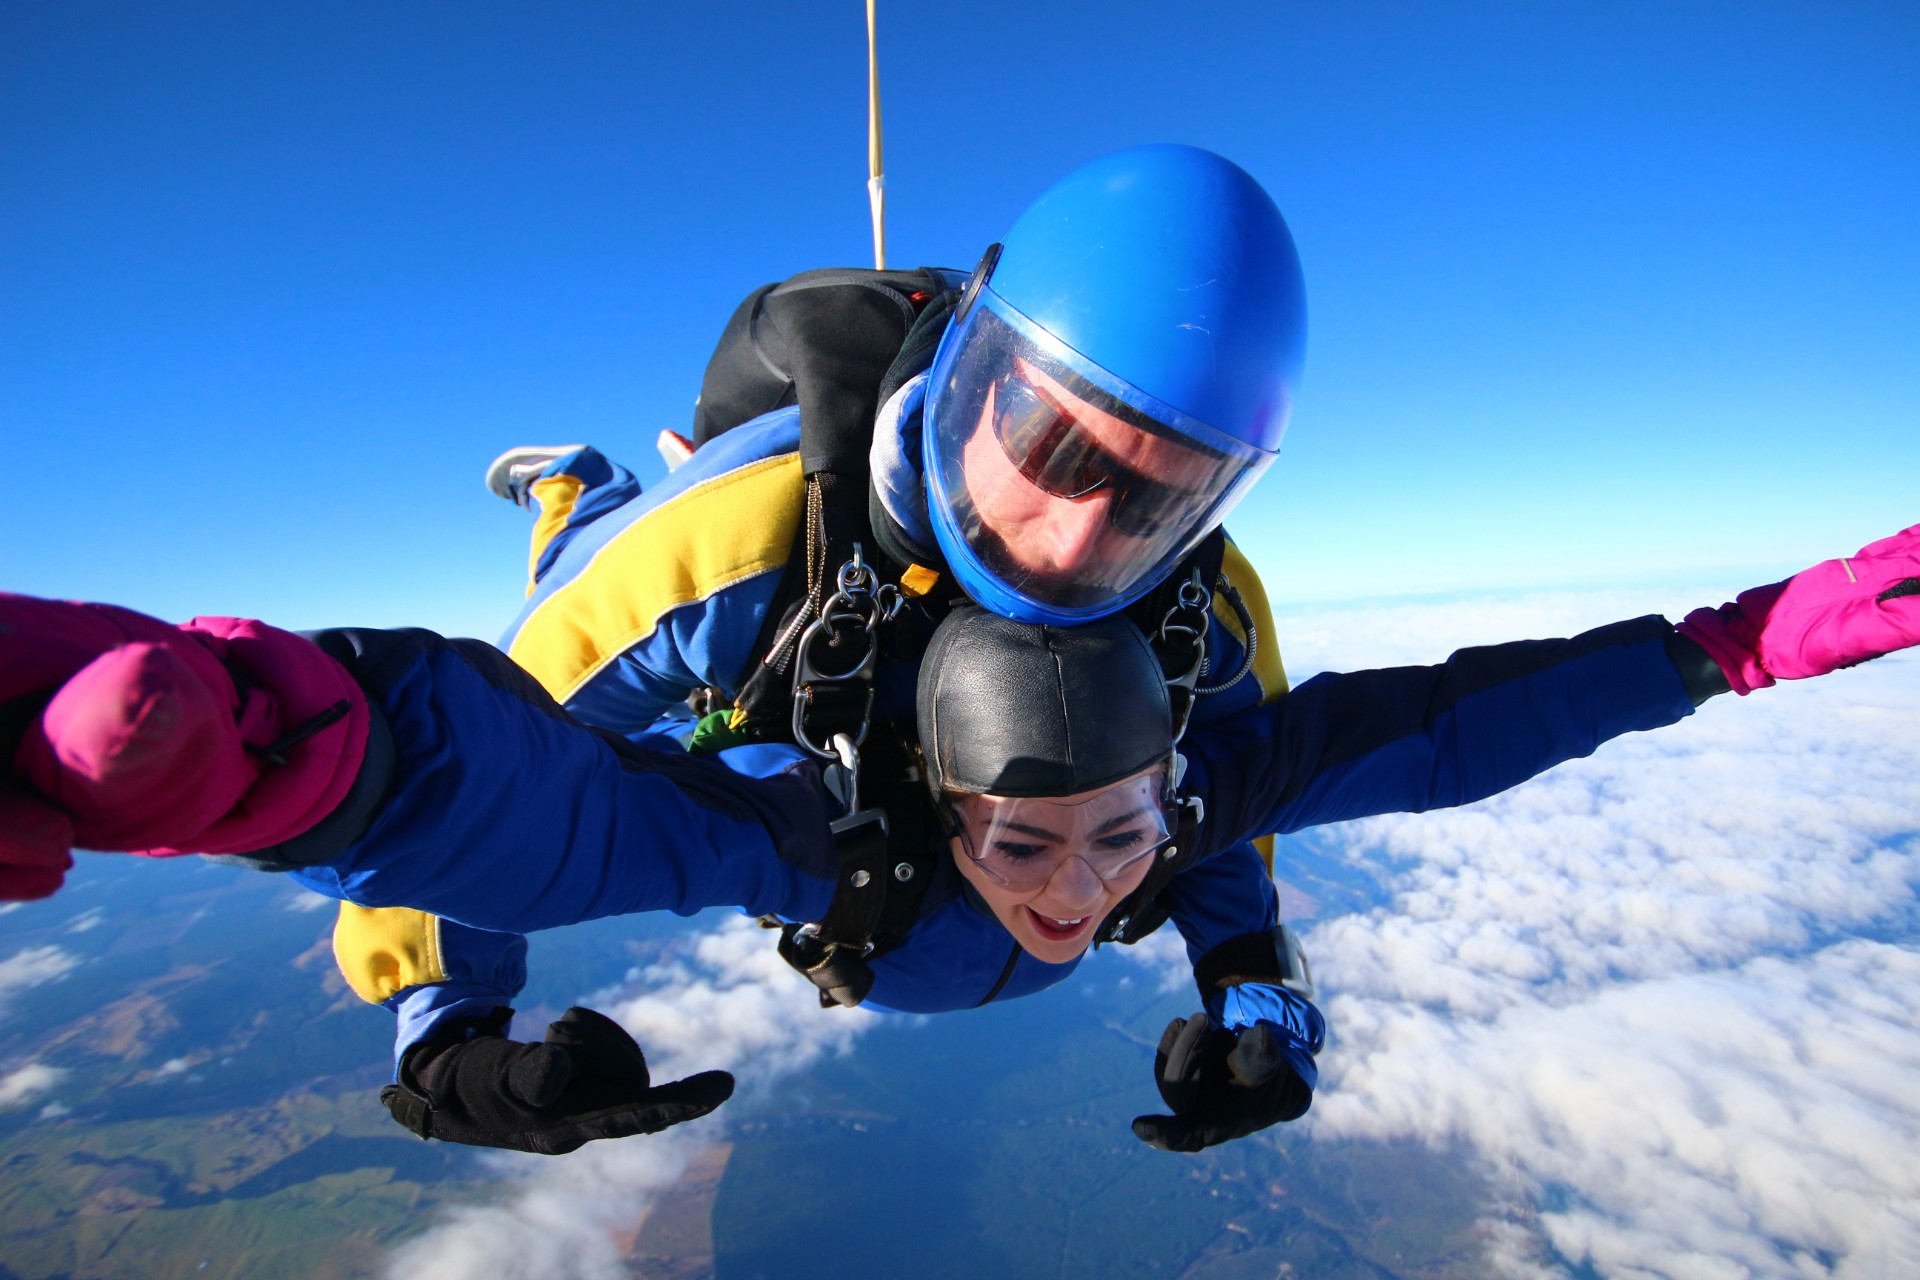 Girl skydiving blue skies clouds pink gloves Skydive Taupo The Best Skydiving in New Zealand